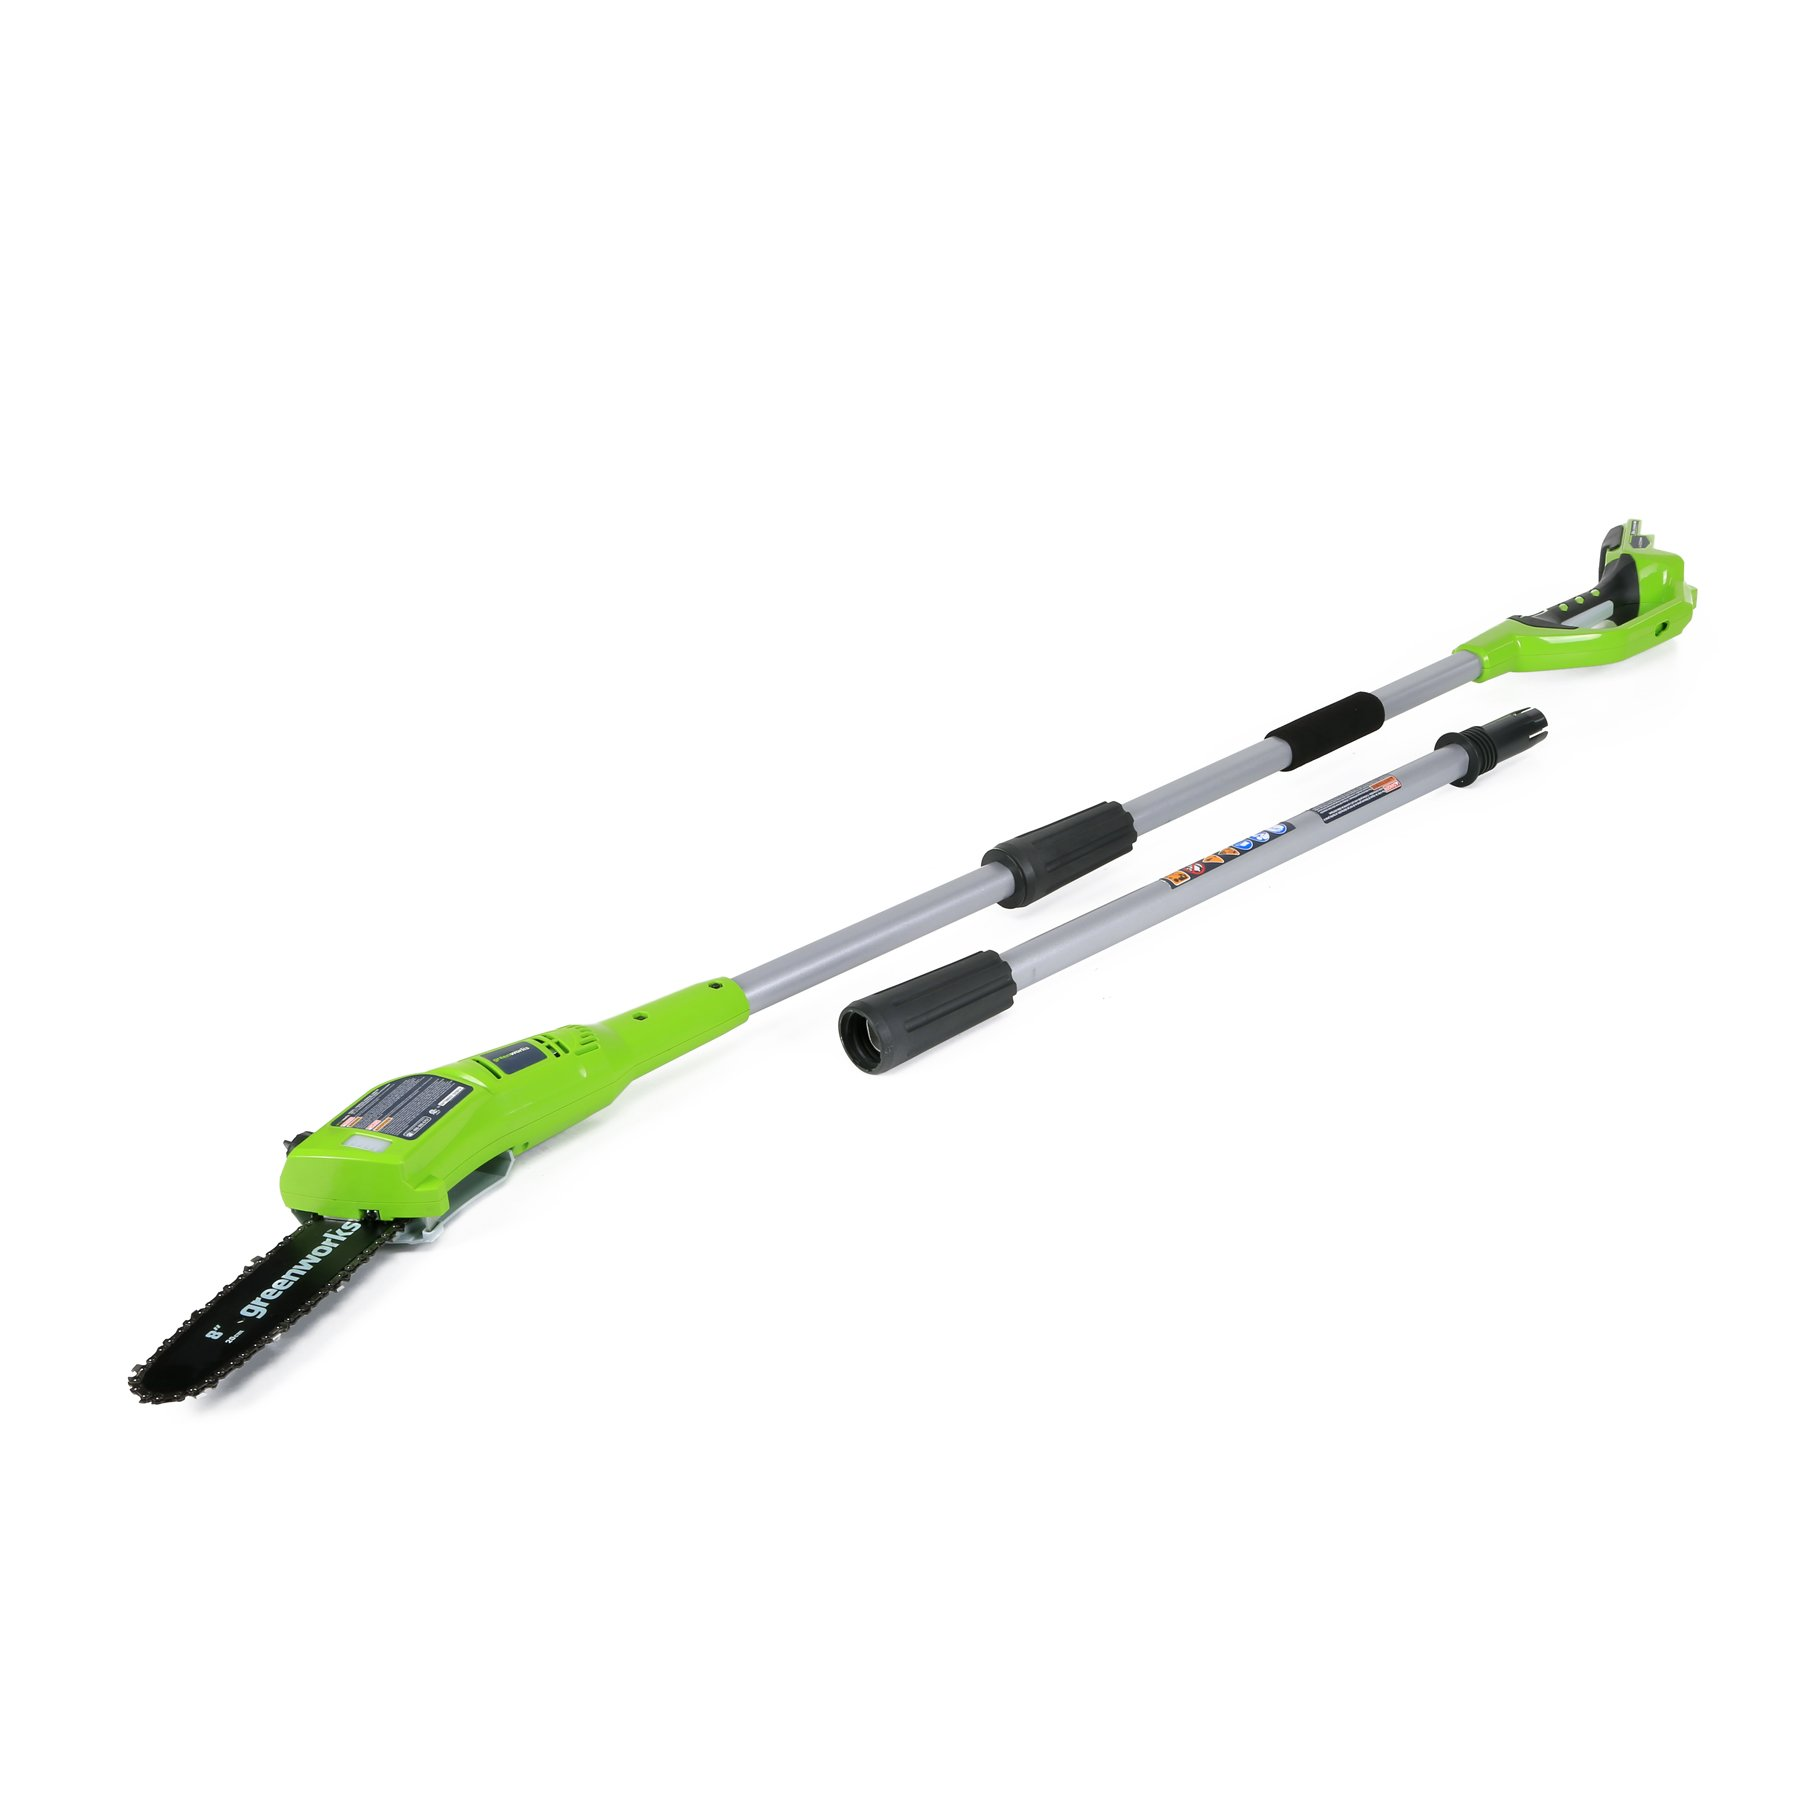 Greenworks 8.3' 24V Cordless Pole Saw, Battery Not Included 1400102